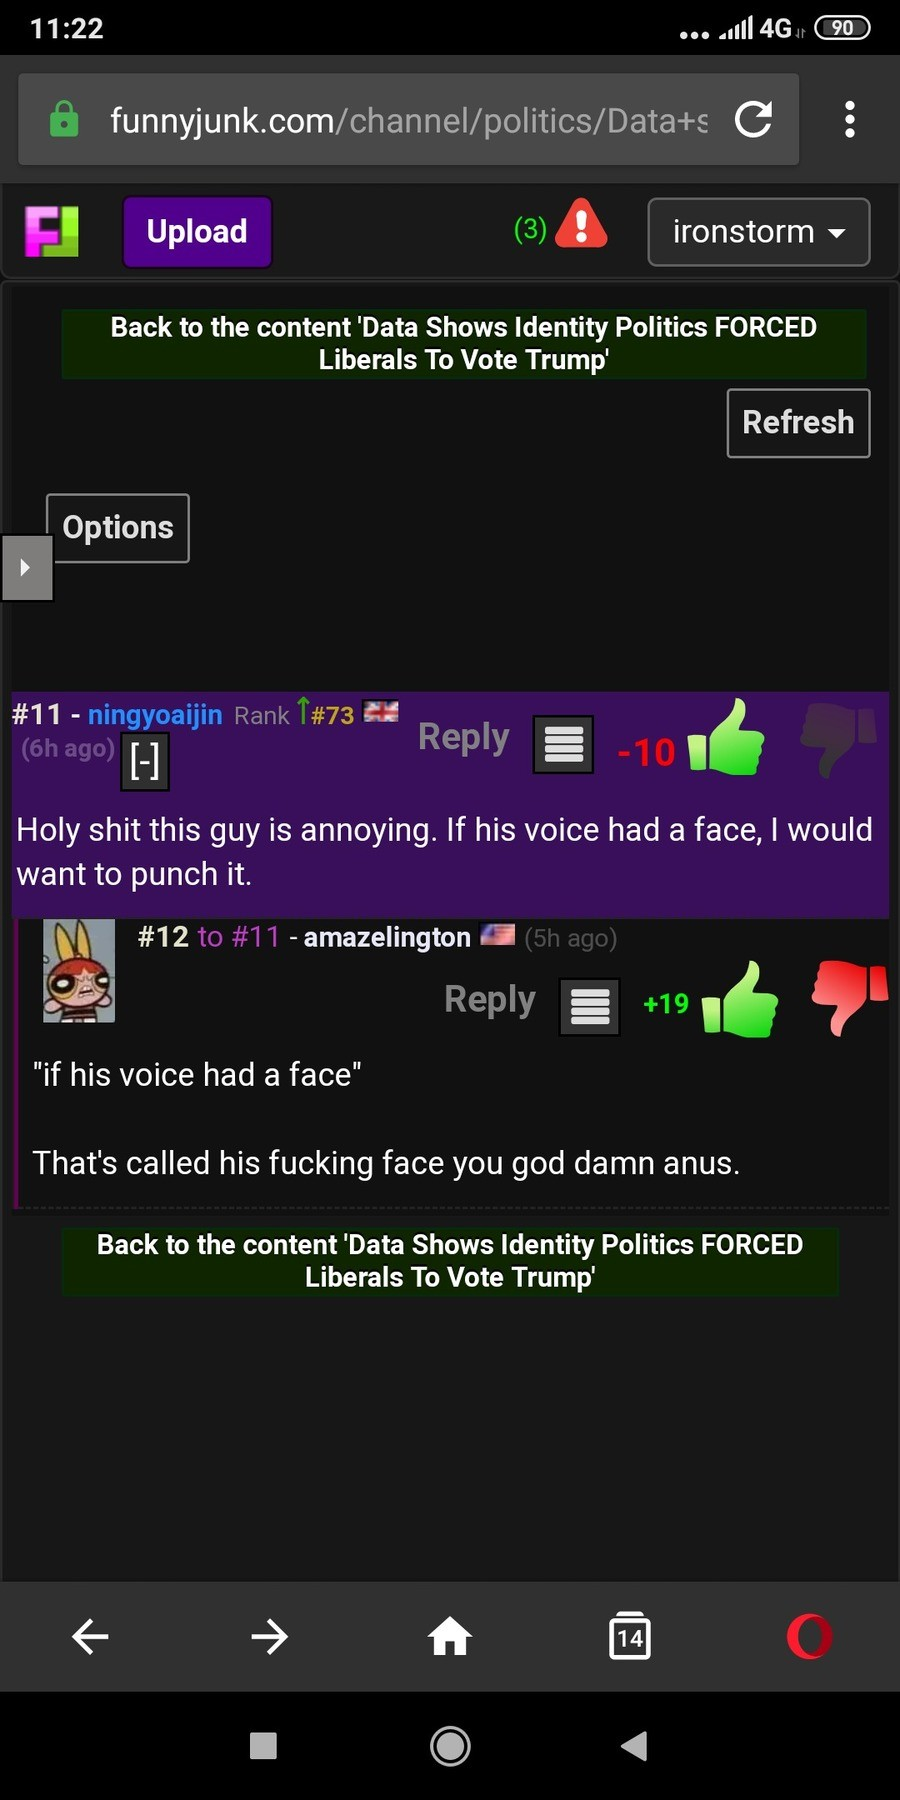 A voice with a face. .. What was that post about again? If his god damn anus had a face I would it.